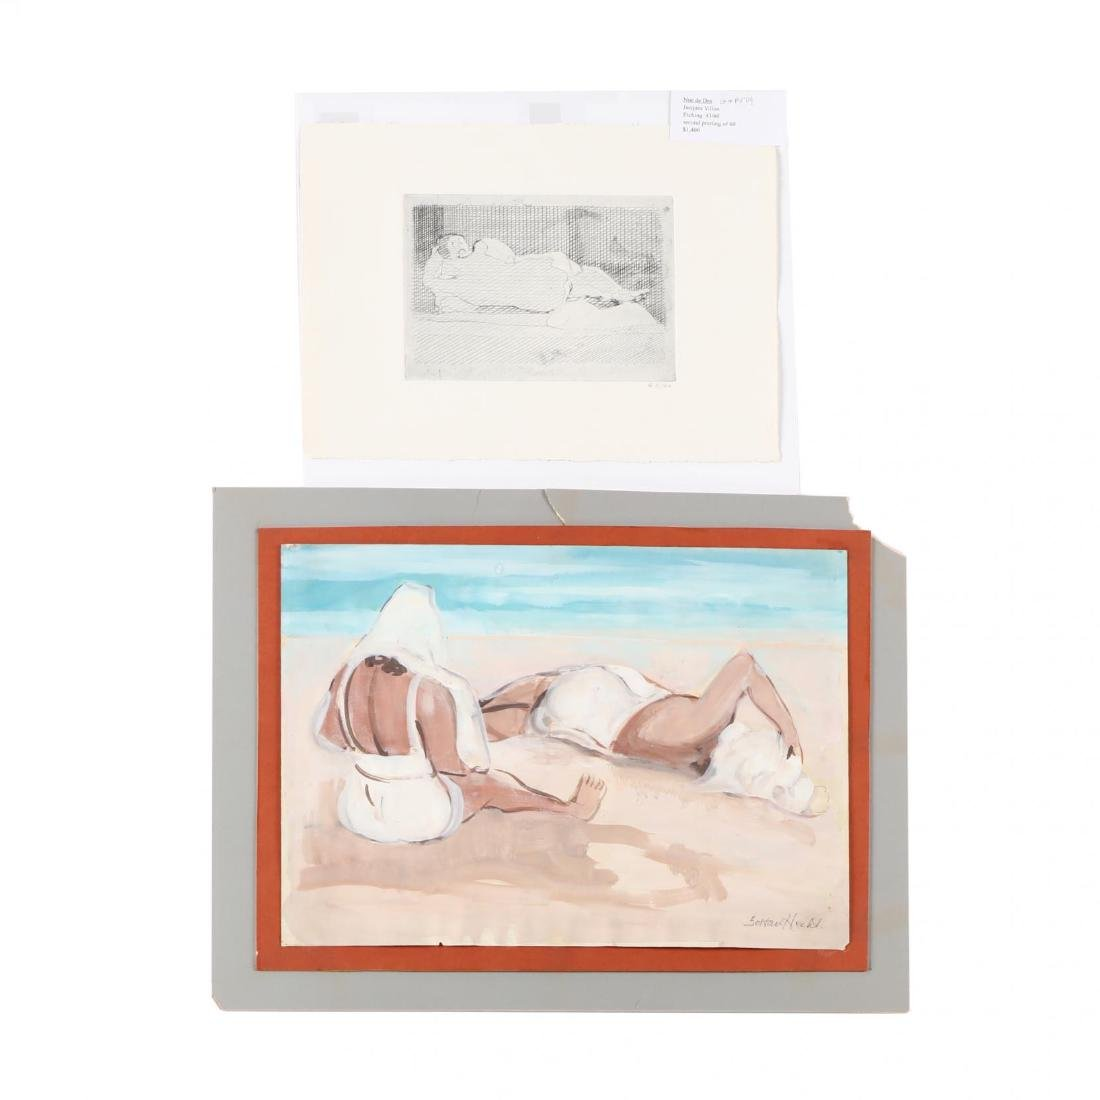 Two 20th-Century Figural Works - Jacques Villon and